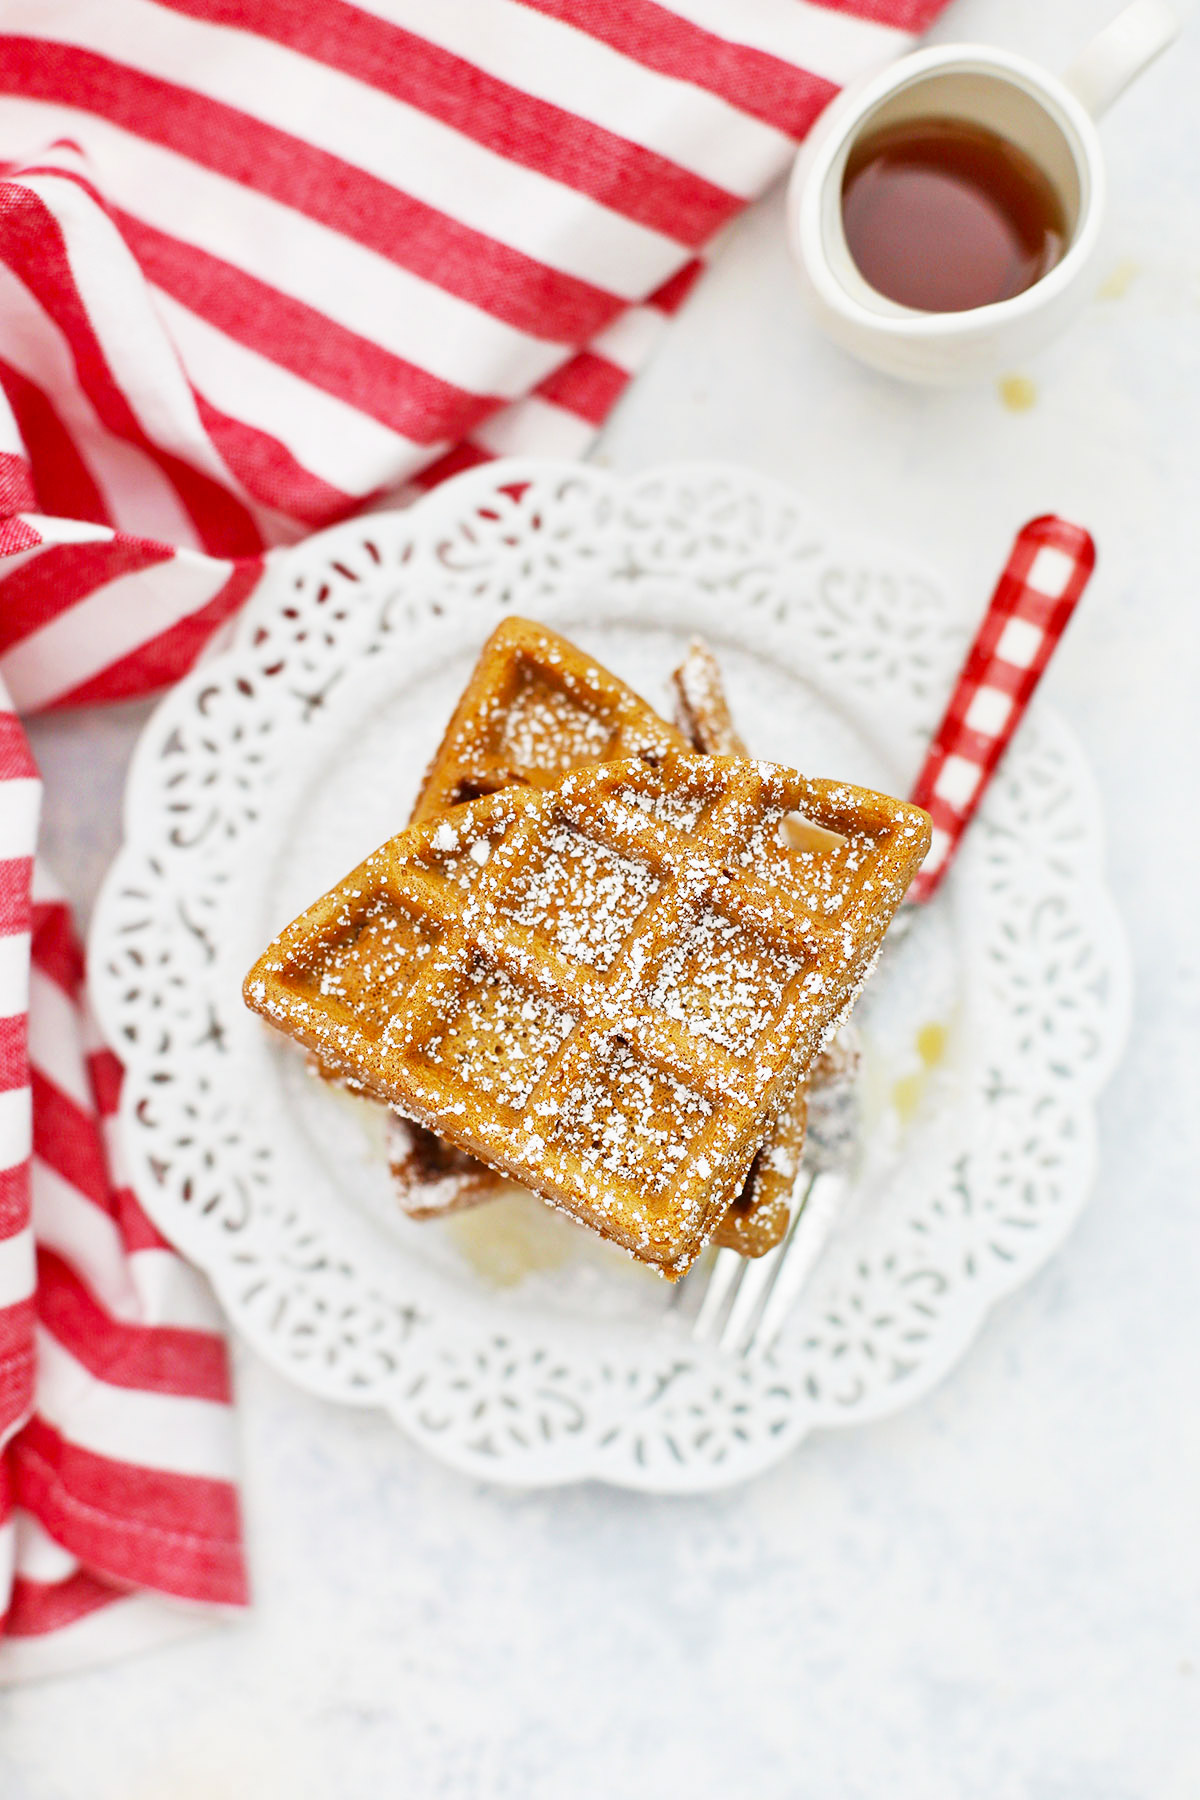 Overhead view of a stack of gluten-free gingerbread waffles topped with powdered sugar on a white lace plate